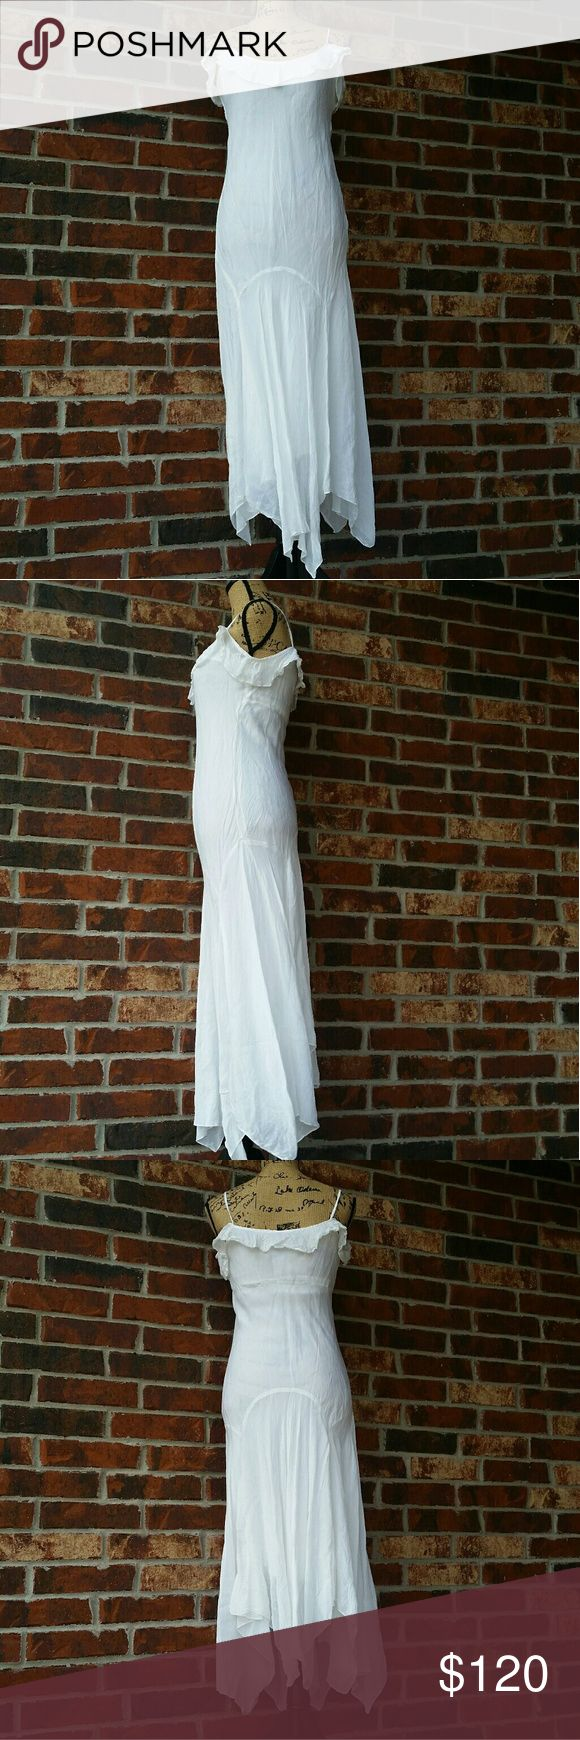 "JOHNNY WAS trumpet skirt maxi dress size 2 JOHNNY WAS trumpet skirt maxi dress size 2 lined white crinkle fabric . Length 56"" pit to pit measures 17"" . BOHEMIAN COACHELLA FESTIVAL Johnny Was Dresses Maxi"